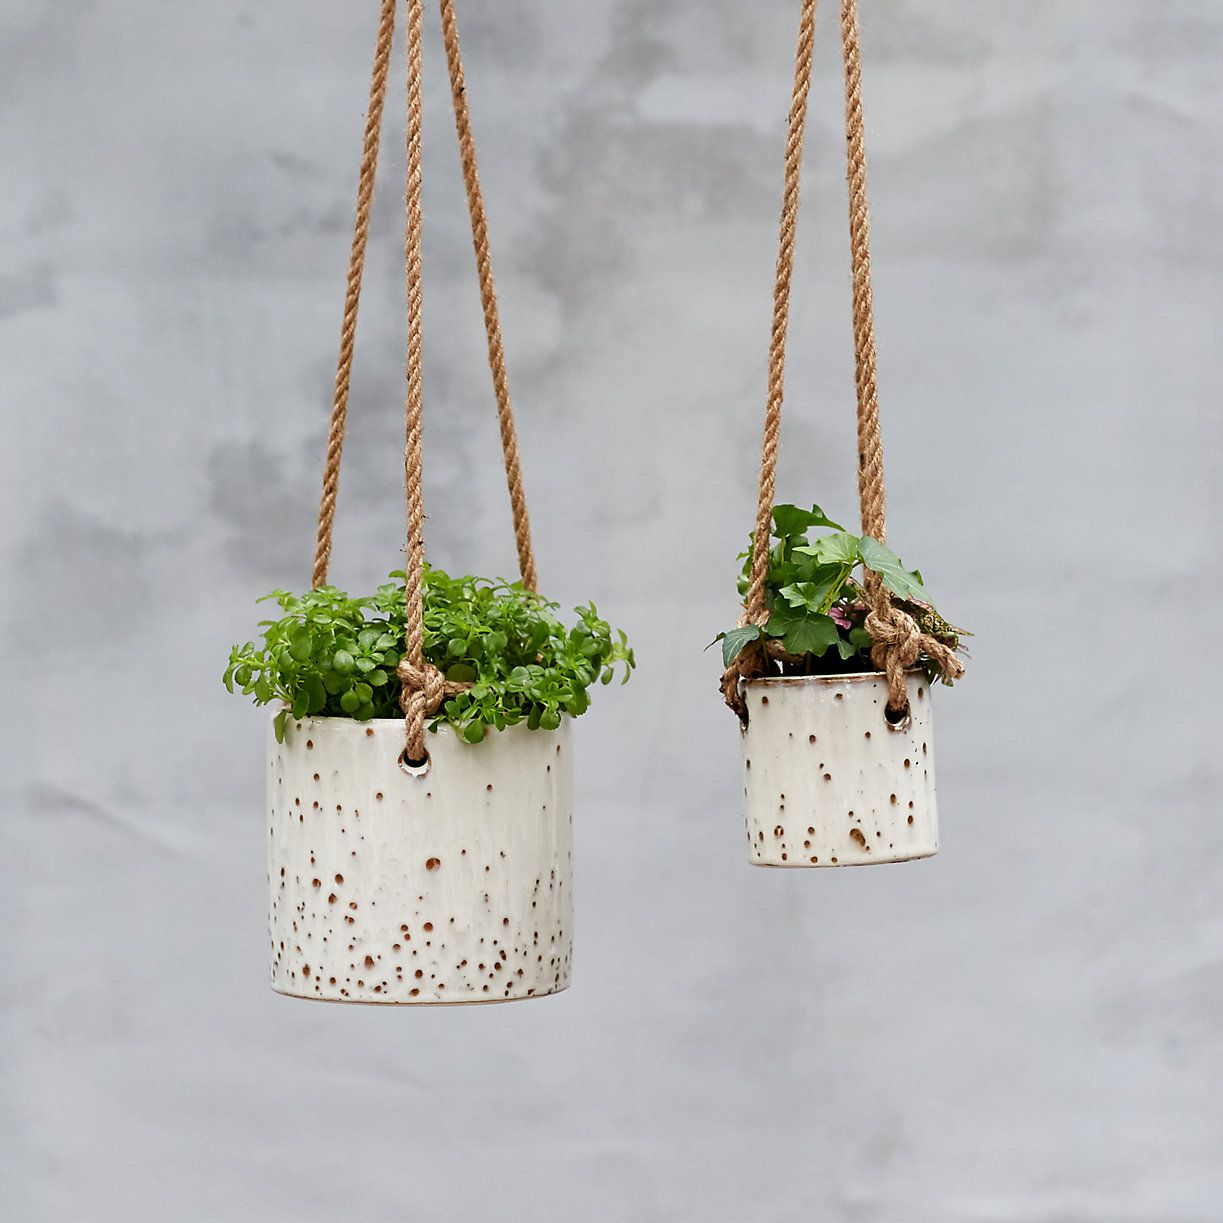 Pin By Mel Med On Macetas In 2020 With Images Hanging Pots